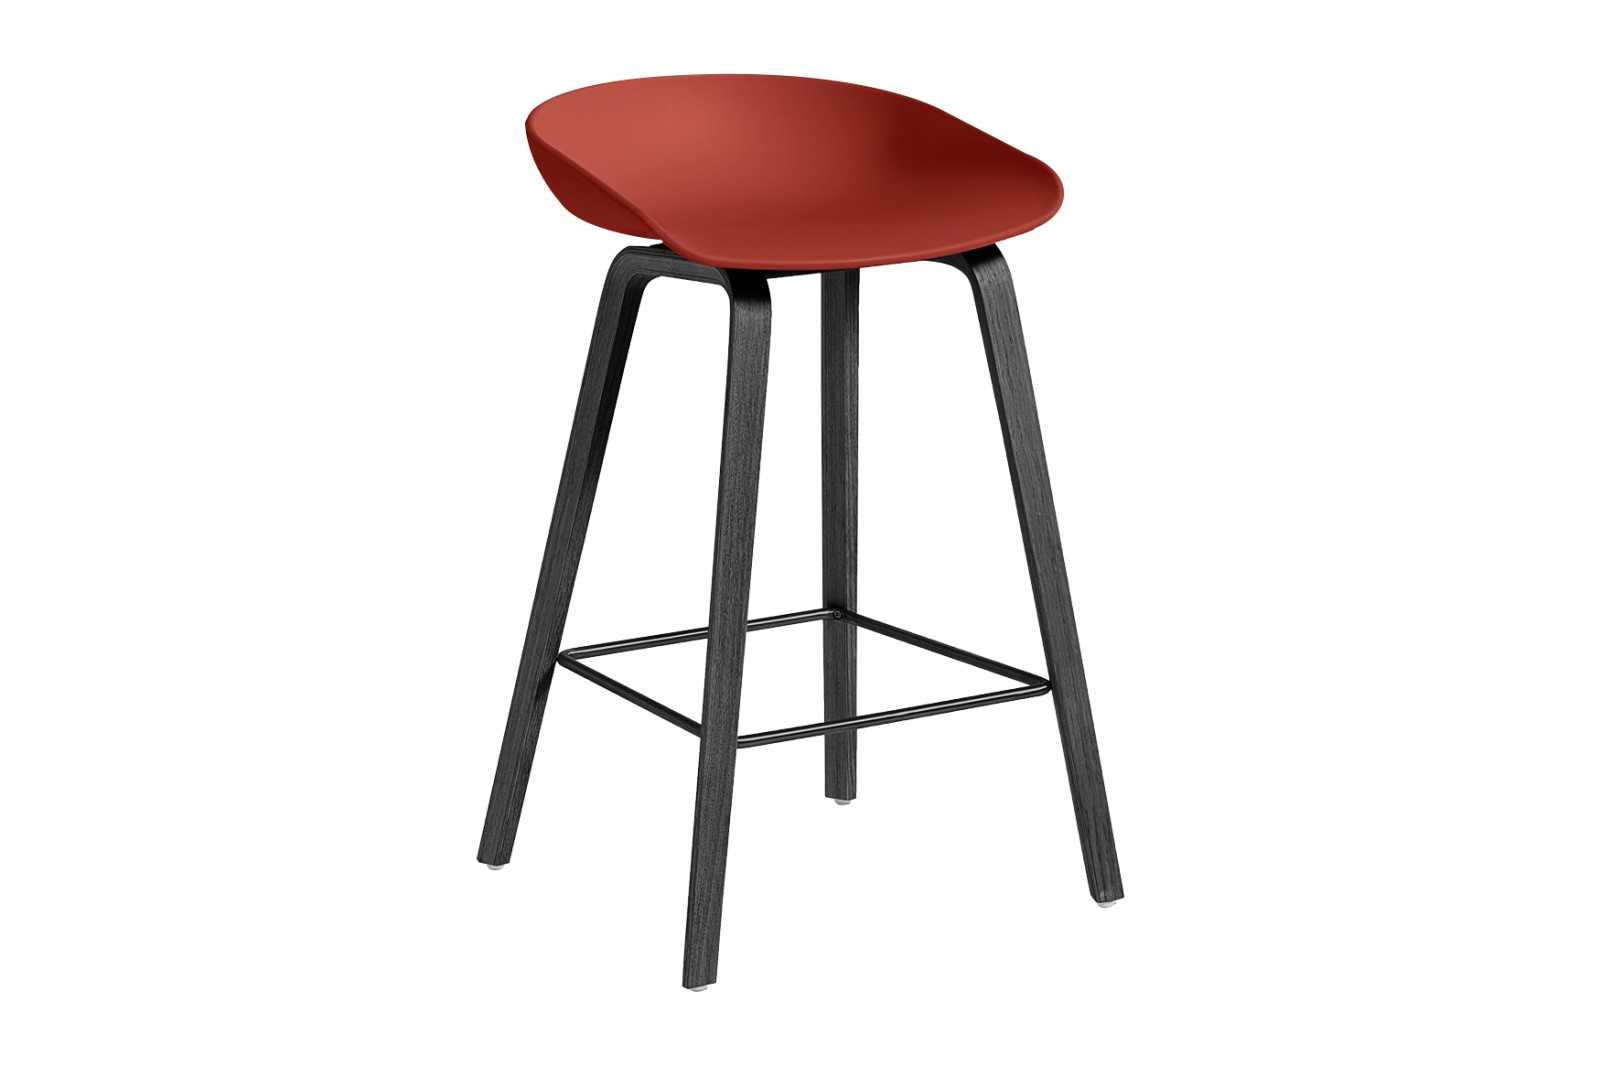 About A Stool AAS32 Black Stained Oak Base, Warm Red Seat, Low, Black Powder Coated Steel